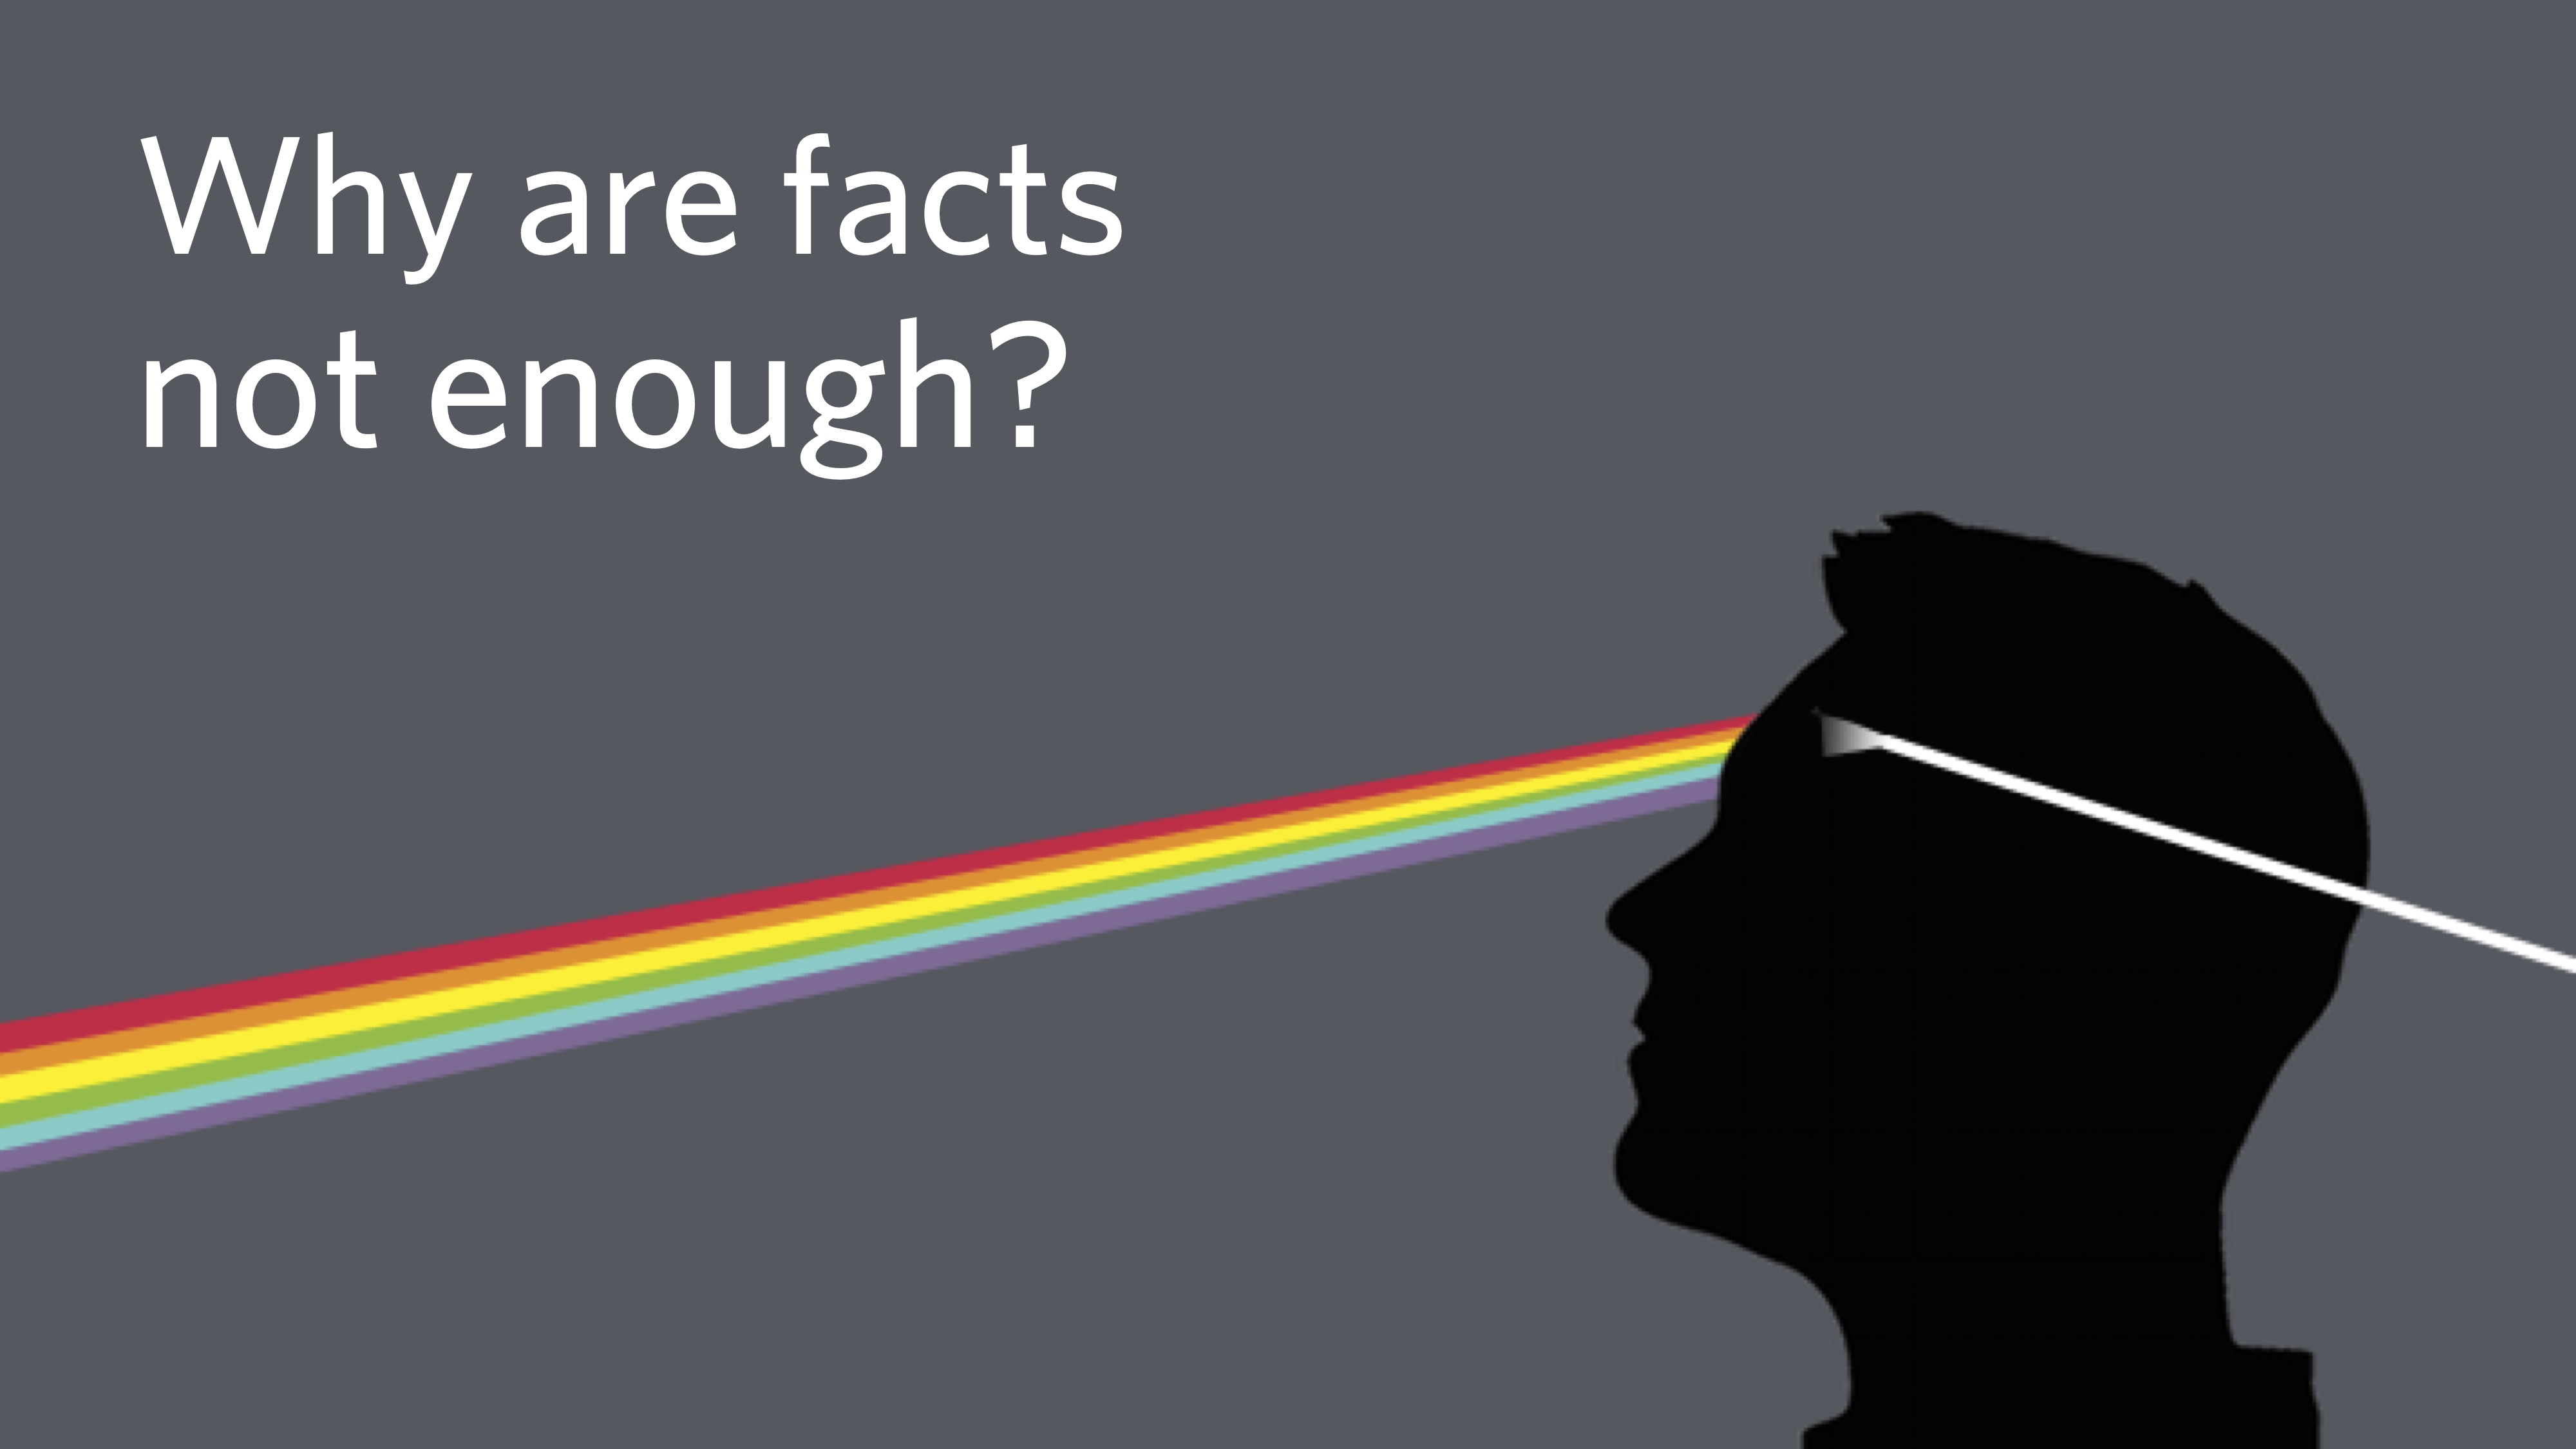 facts-arent-enough image